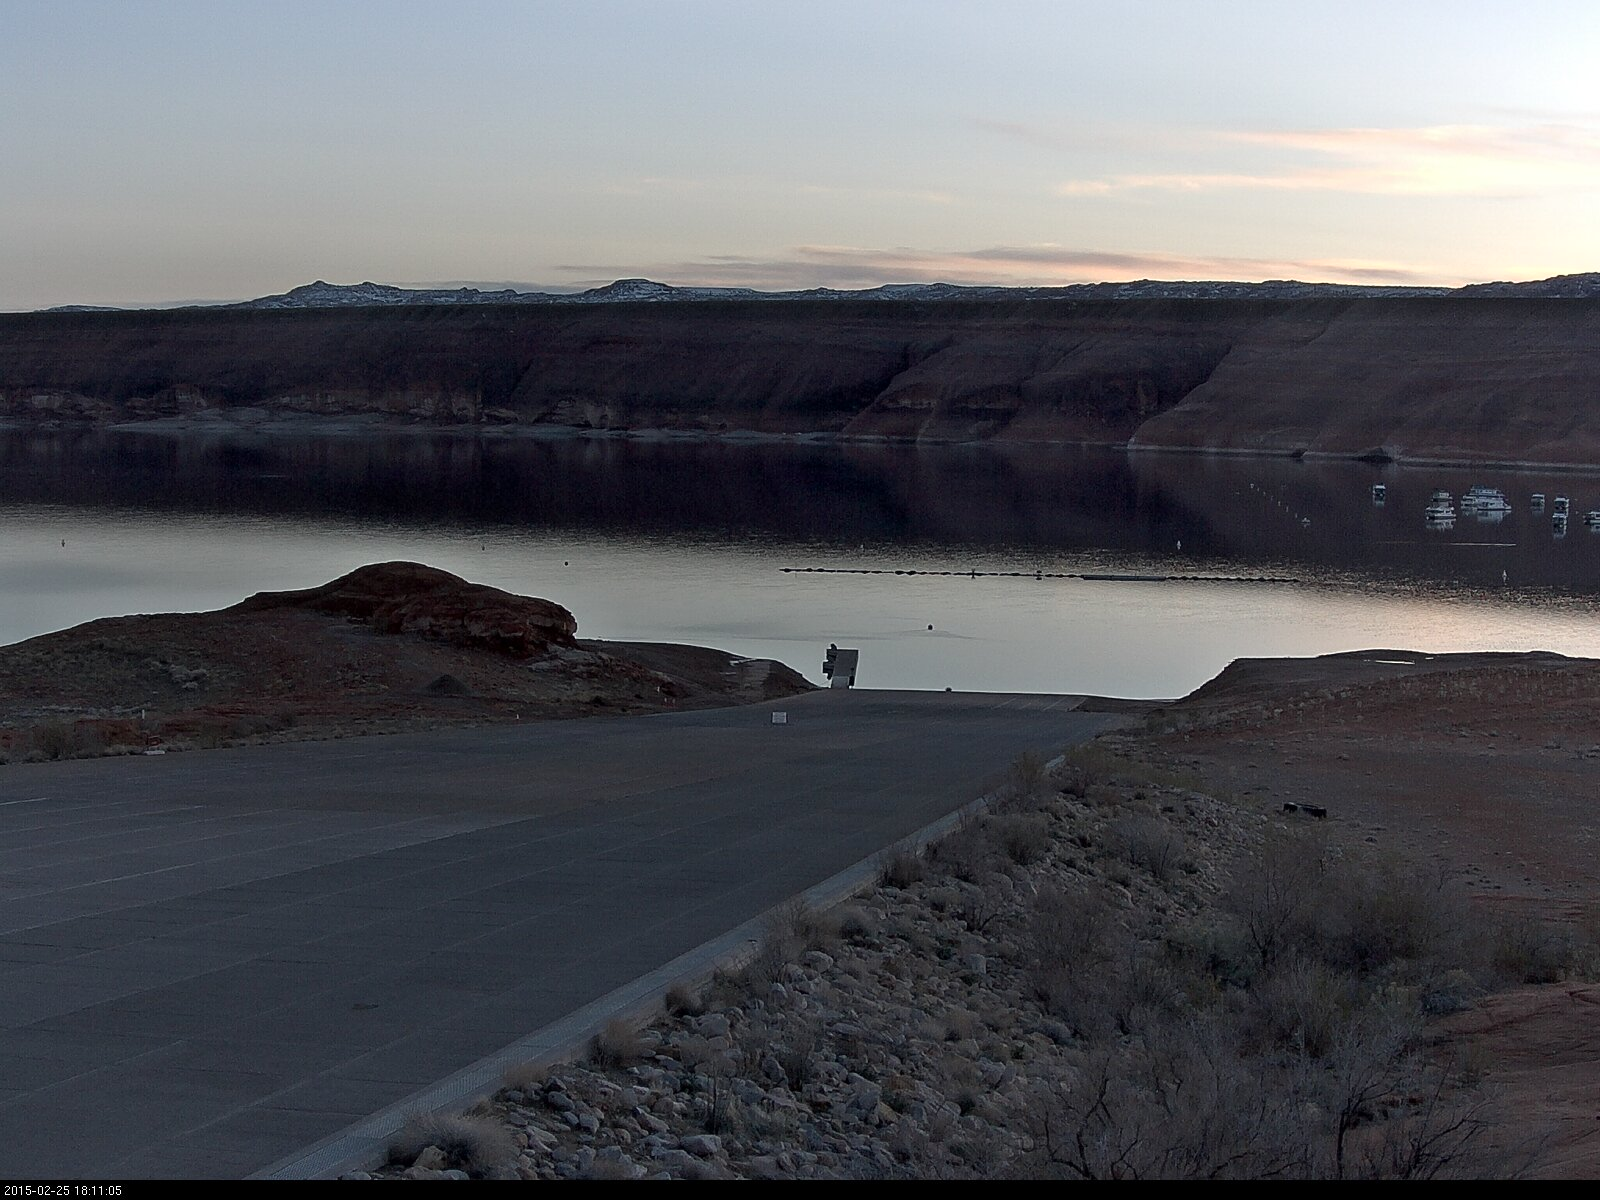 Lake Powell - Bullfrog